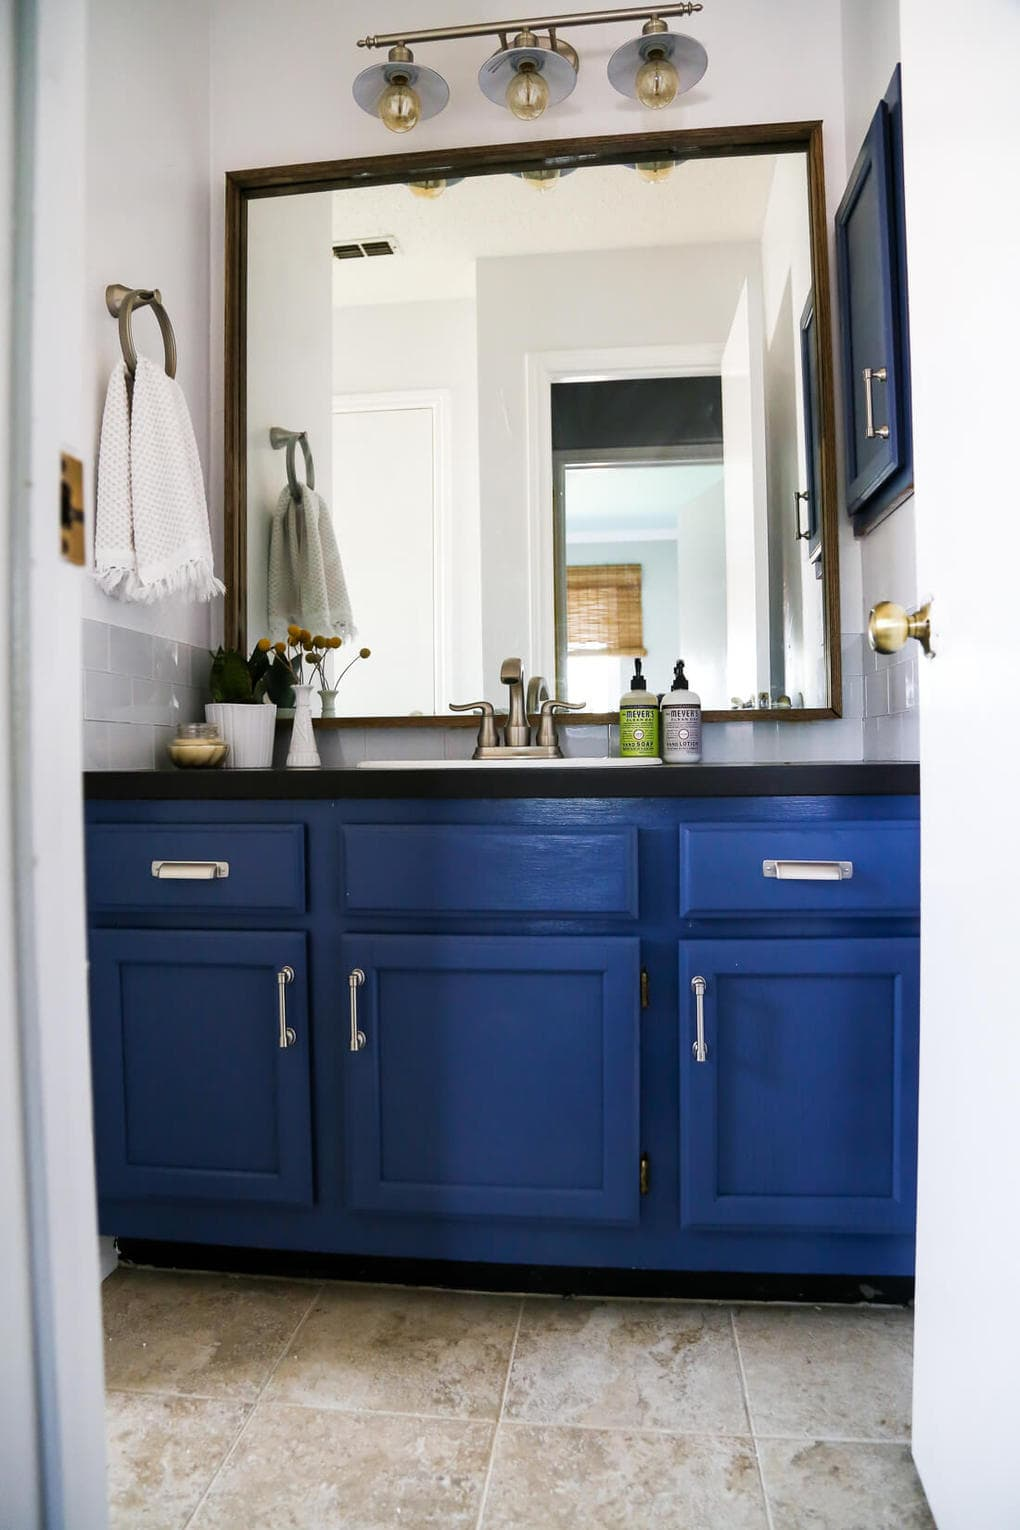 A DIY modern, serene bathroom renovation that can be completed in a weekend. Great ideas for how to upgrade an ugly bathroom and make it look like new without a ton of time or money.